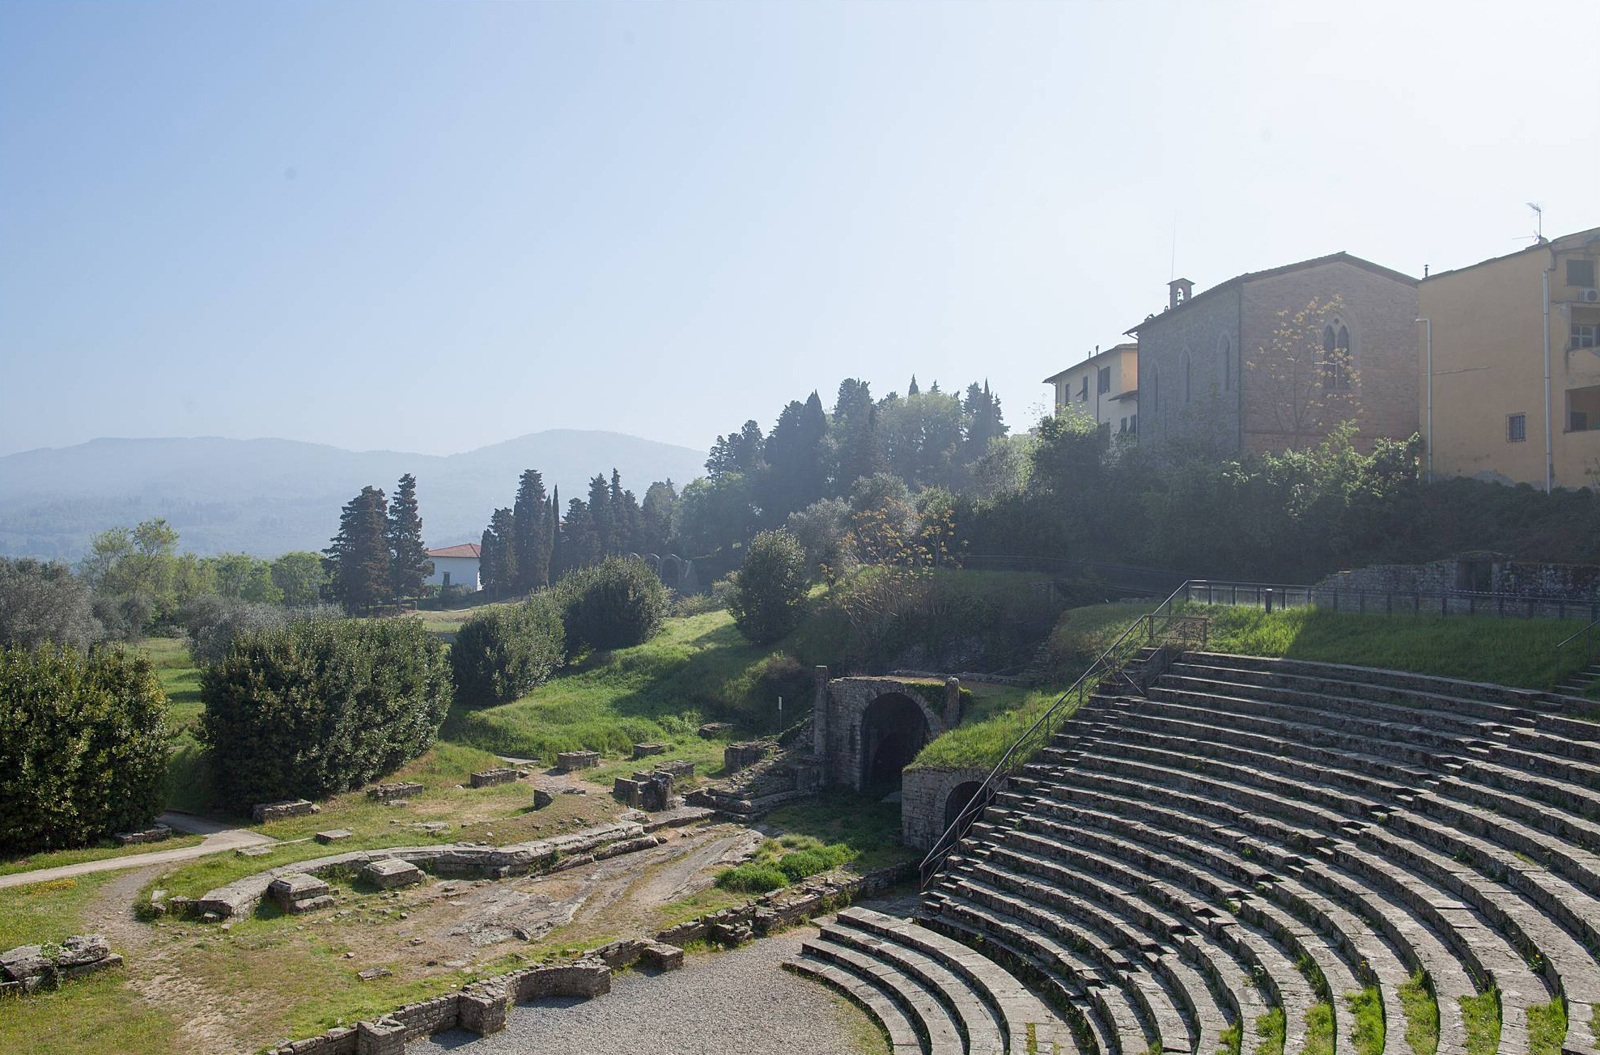 Roman and Etruscan ruins